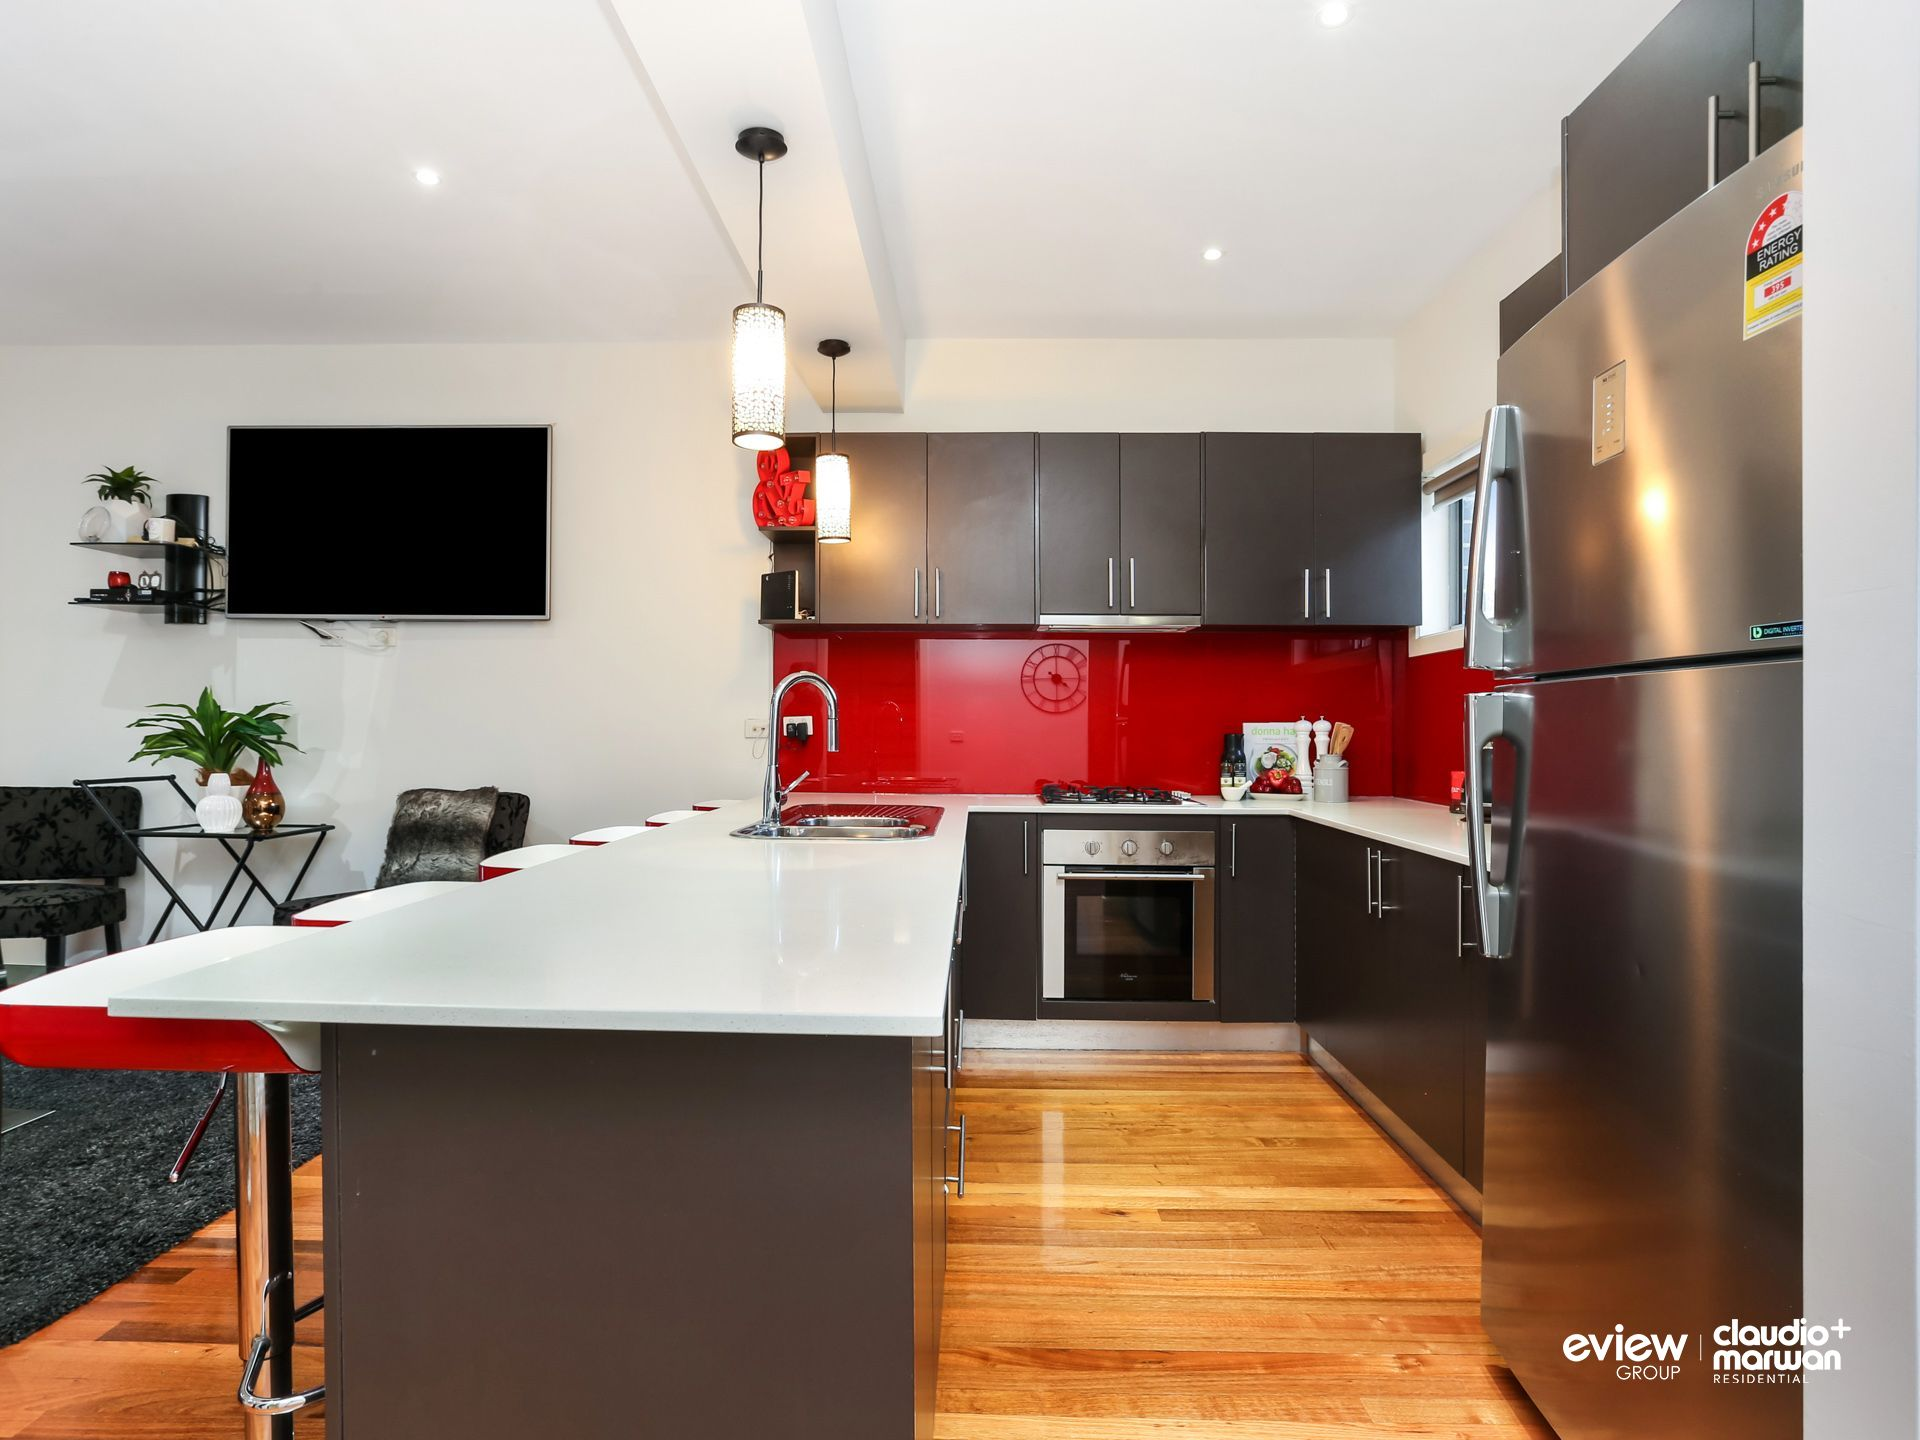 84A View Street, GLENROY, VIC, 3046 - Image